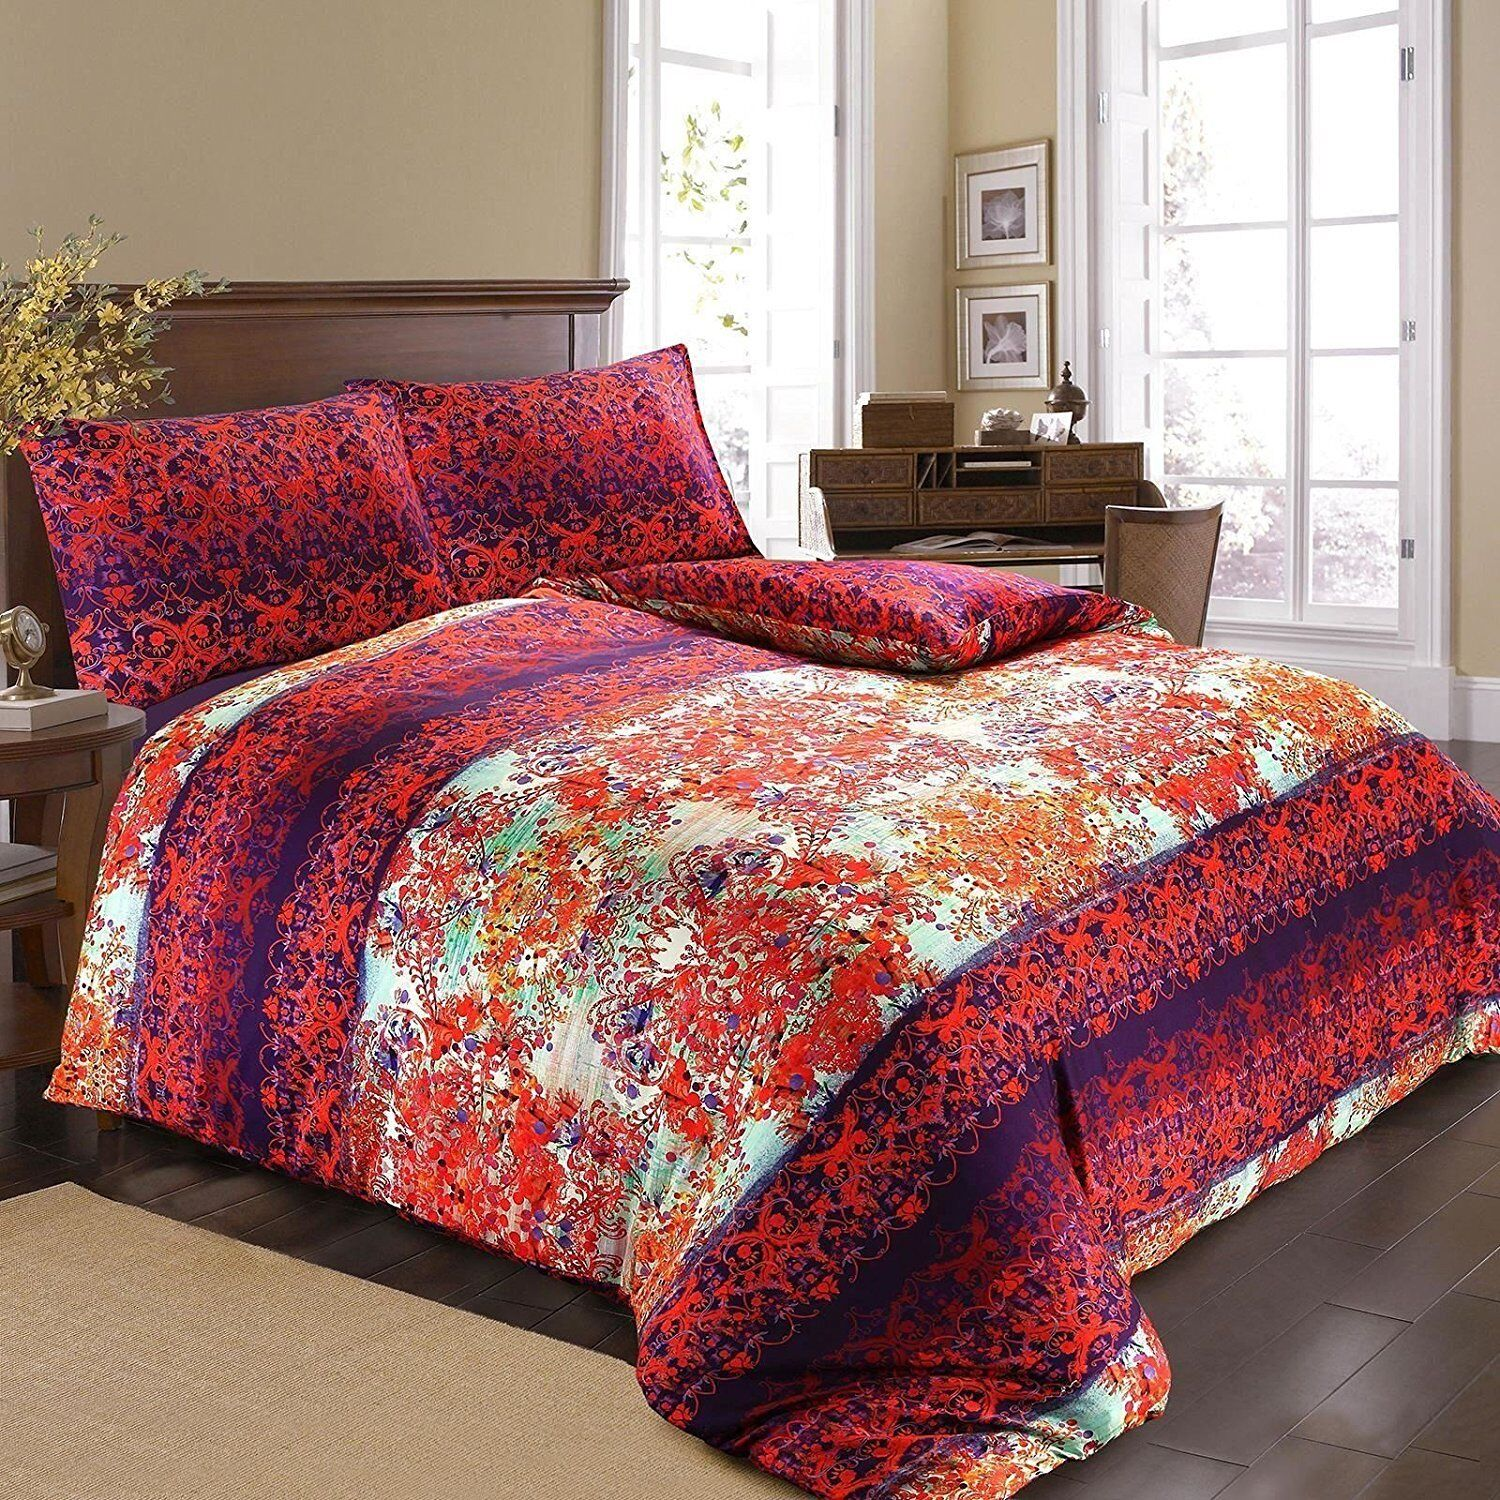 New 100% Egyptian Cotton Abstract Damask Floral Duvet Cover Bed Set Double Size